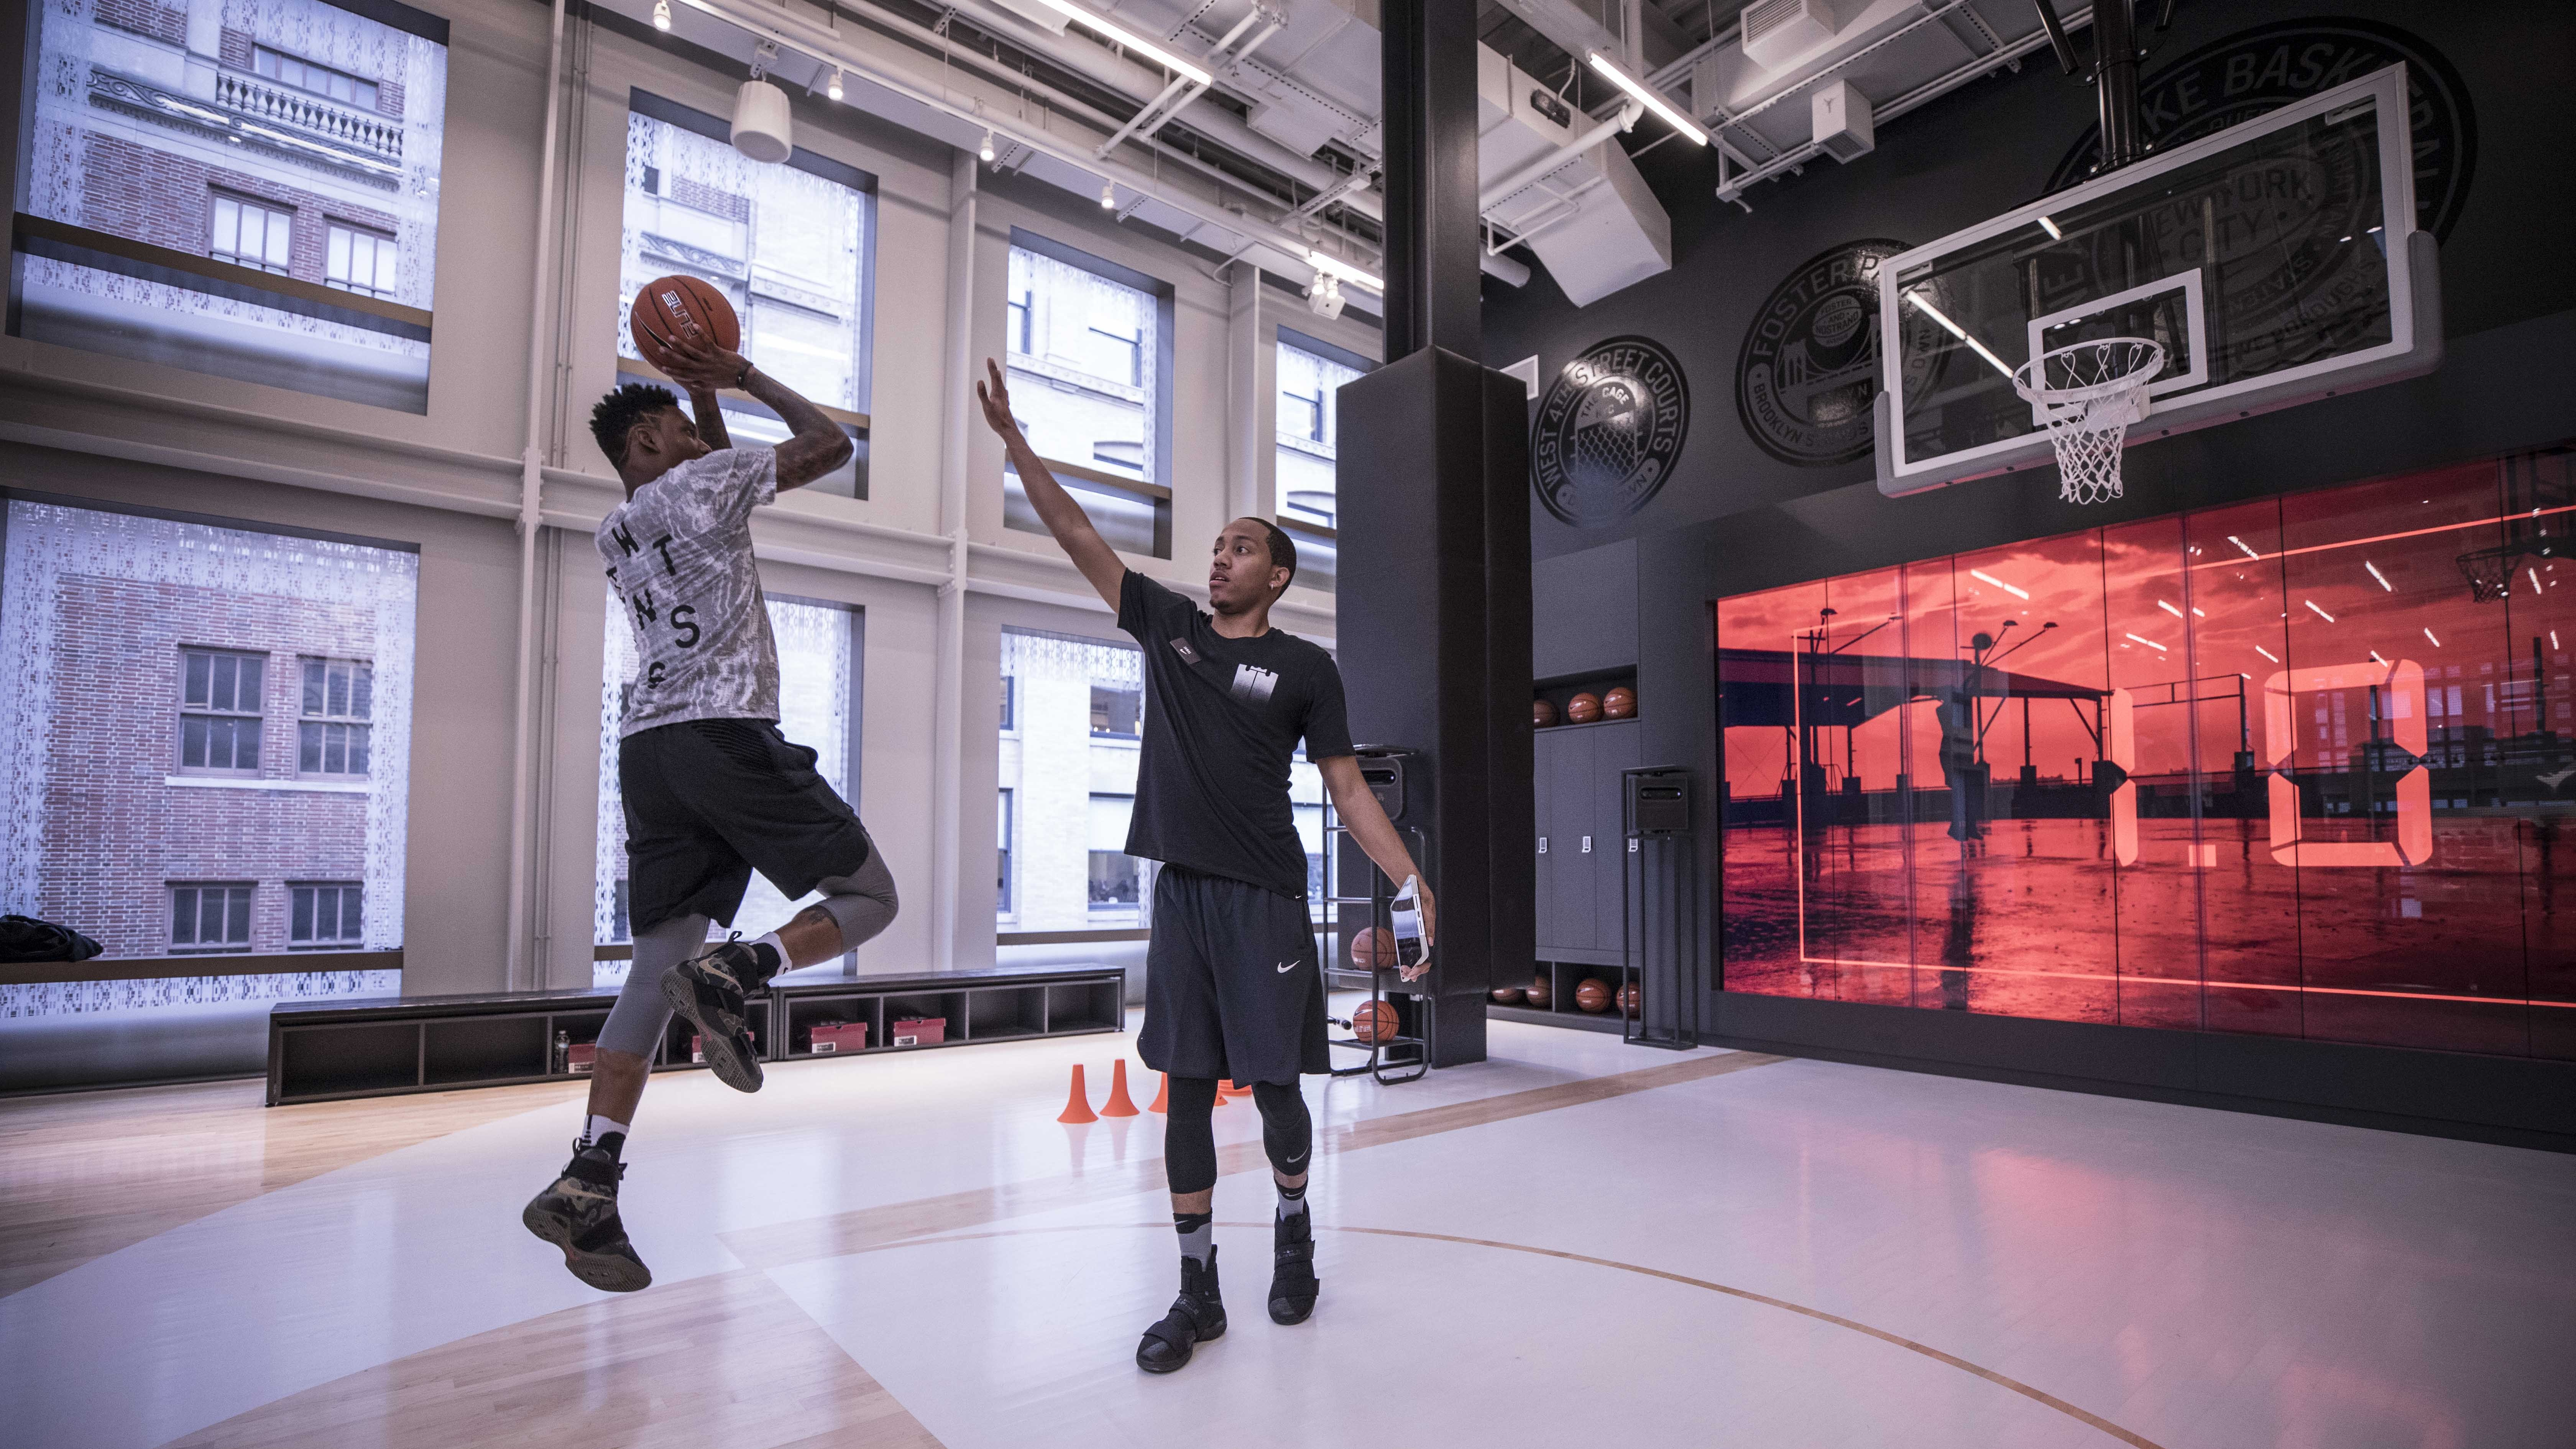 info for 5b322 0c25f Nike s new store in New York is like Legoland for people who love sports